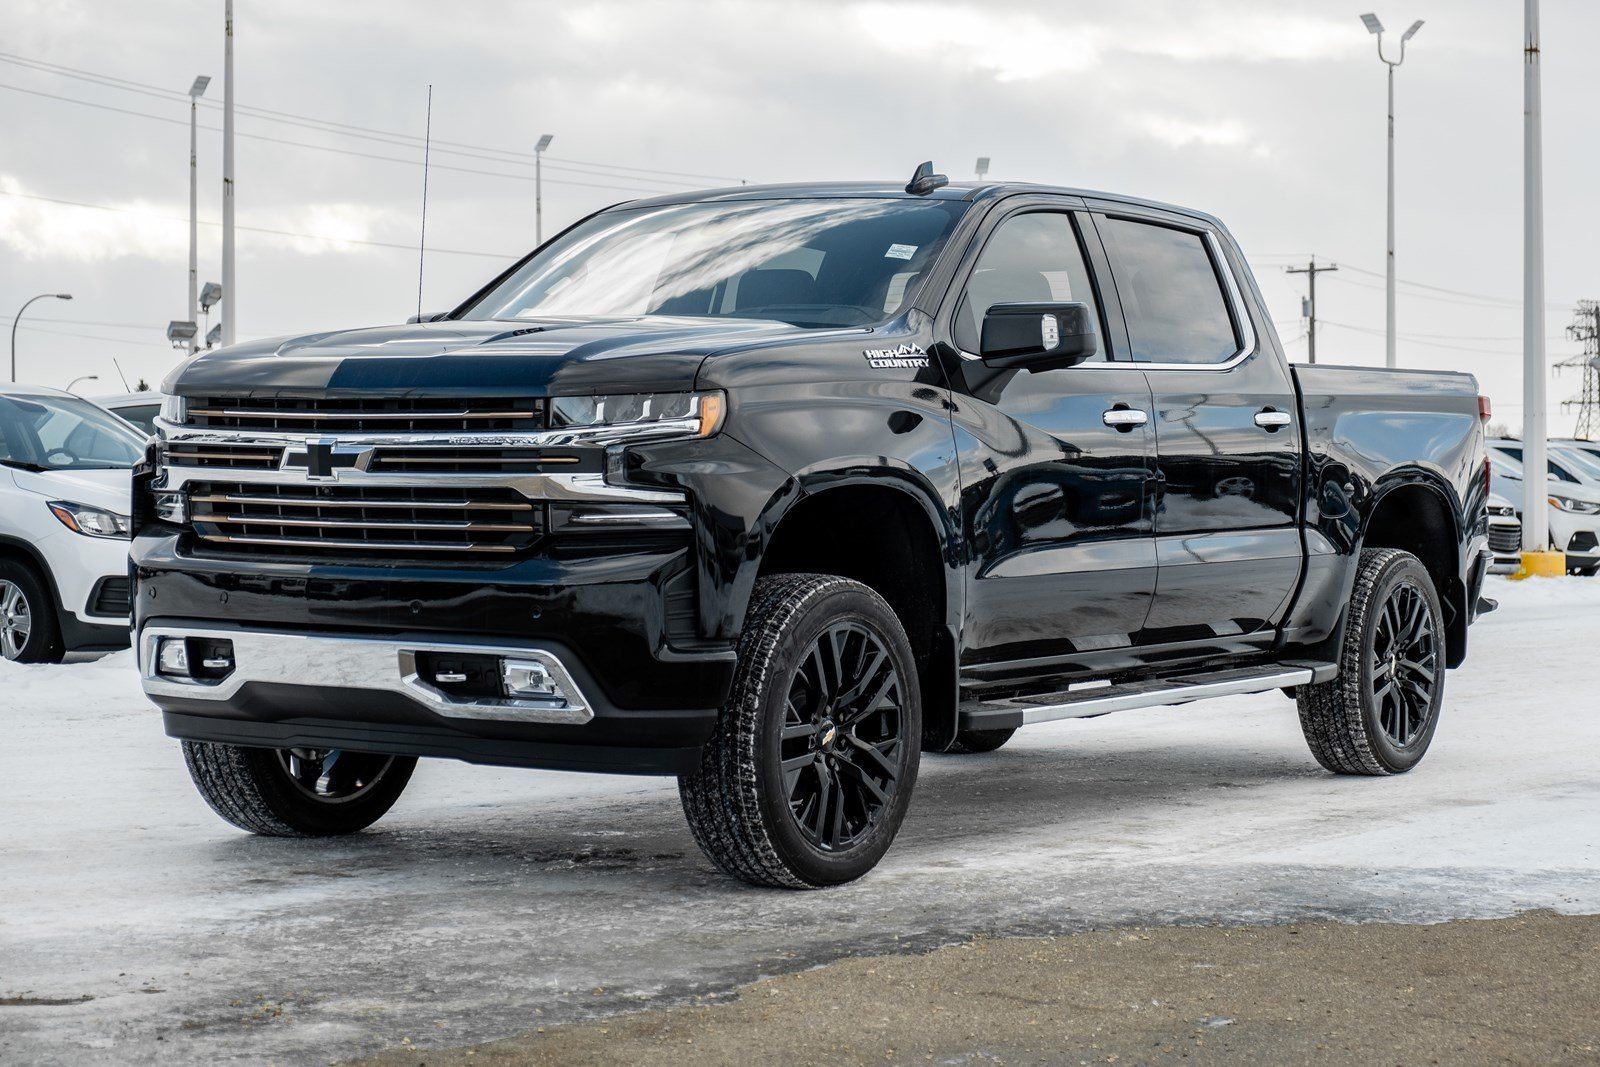 New 2020 Chevrolet Silverado 1500 High Country | 3.5in Lift, Exhaust Kit, Tonneau Cover 4WD Crew Cab Pickup